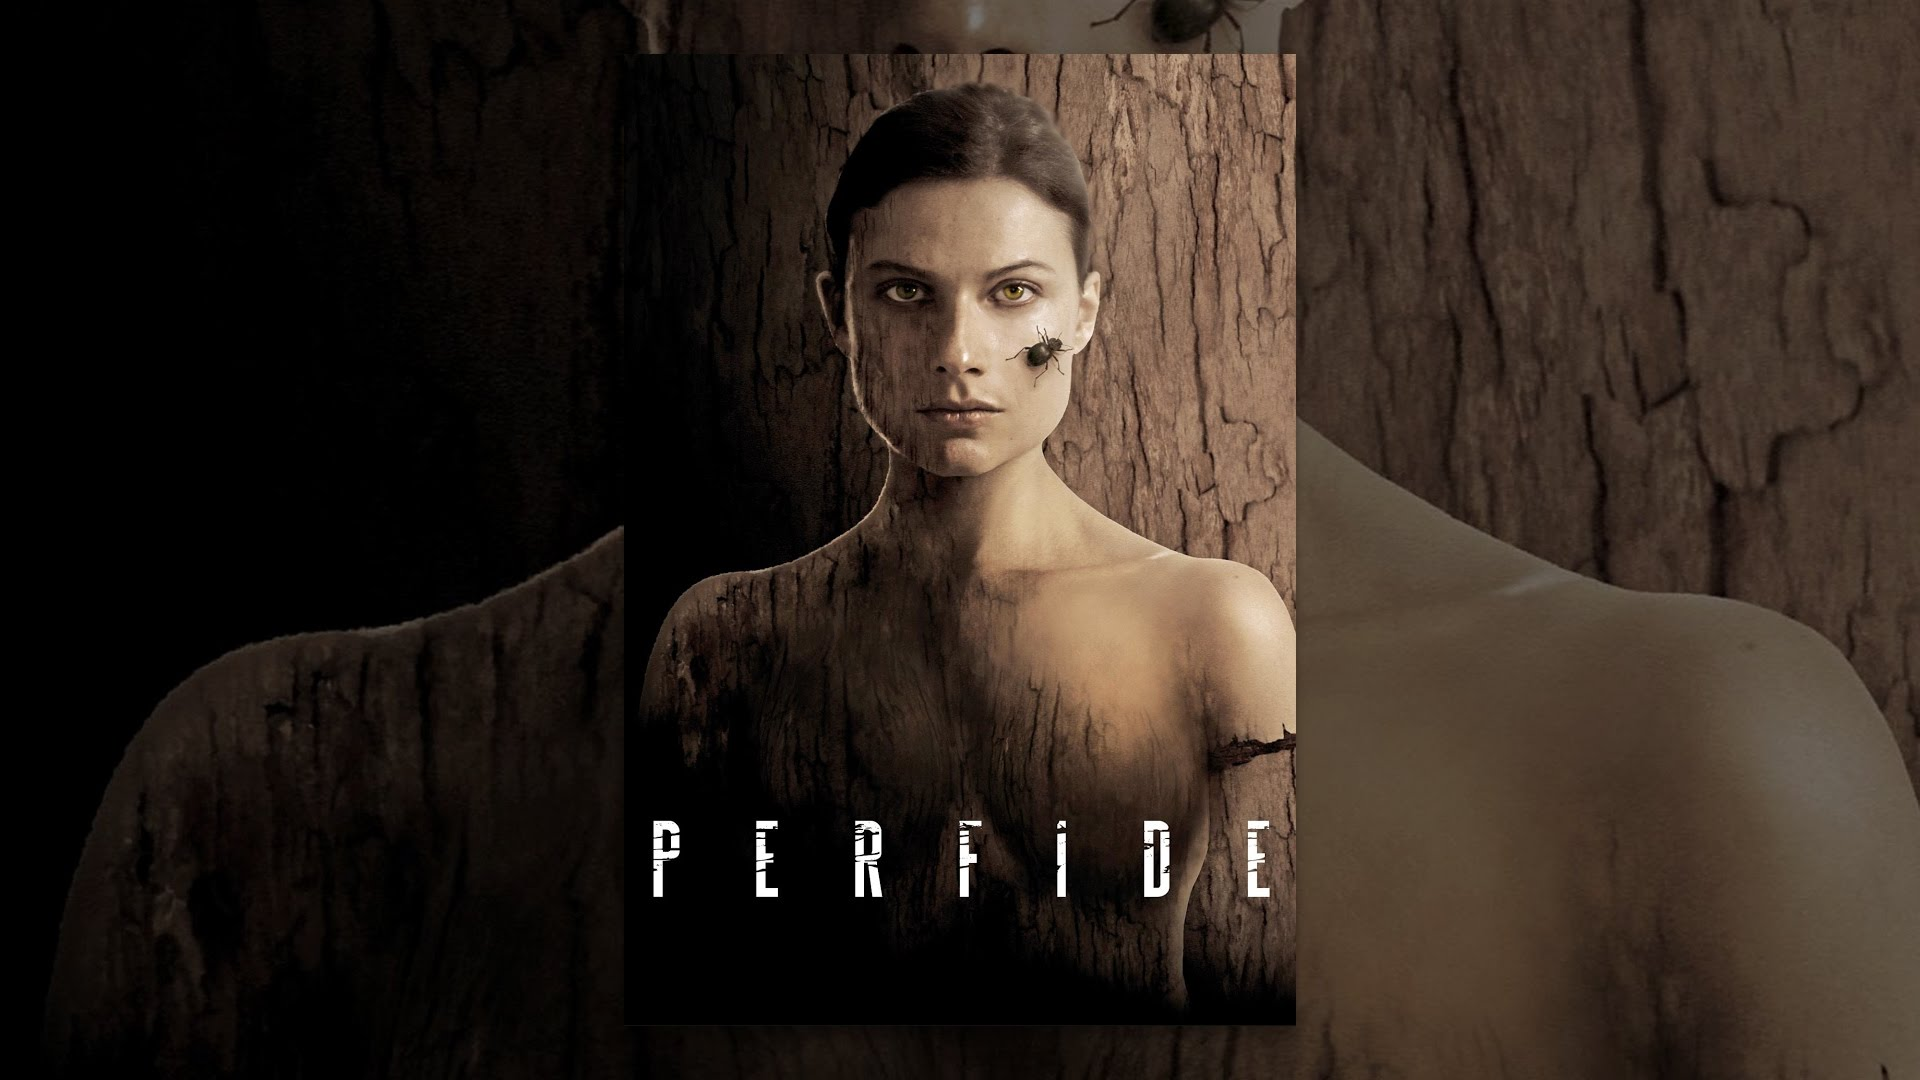 Perfiede